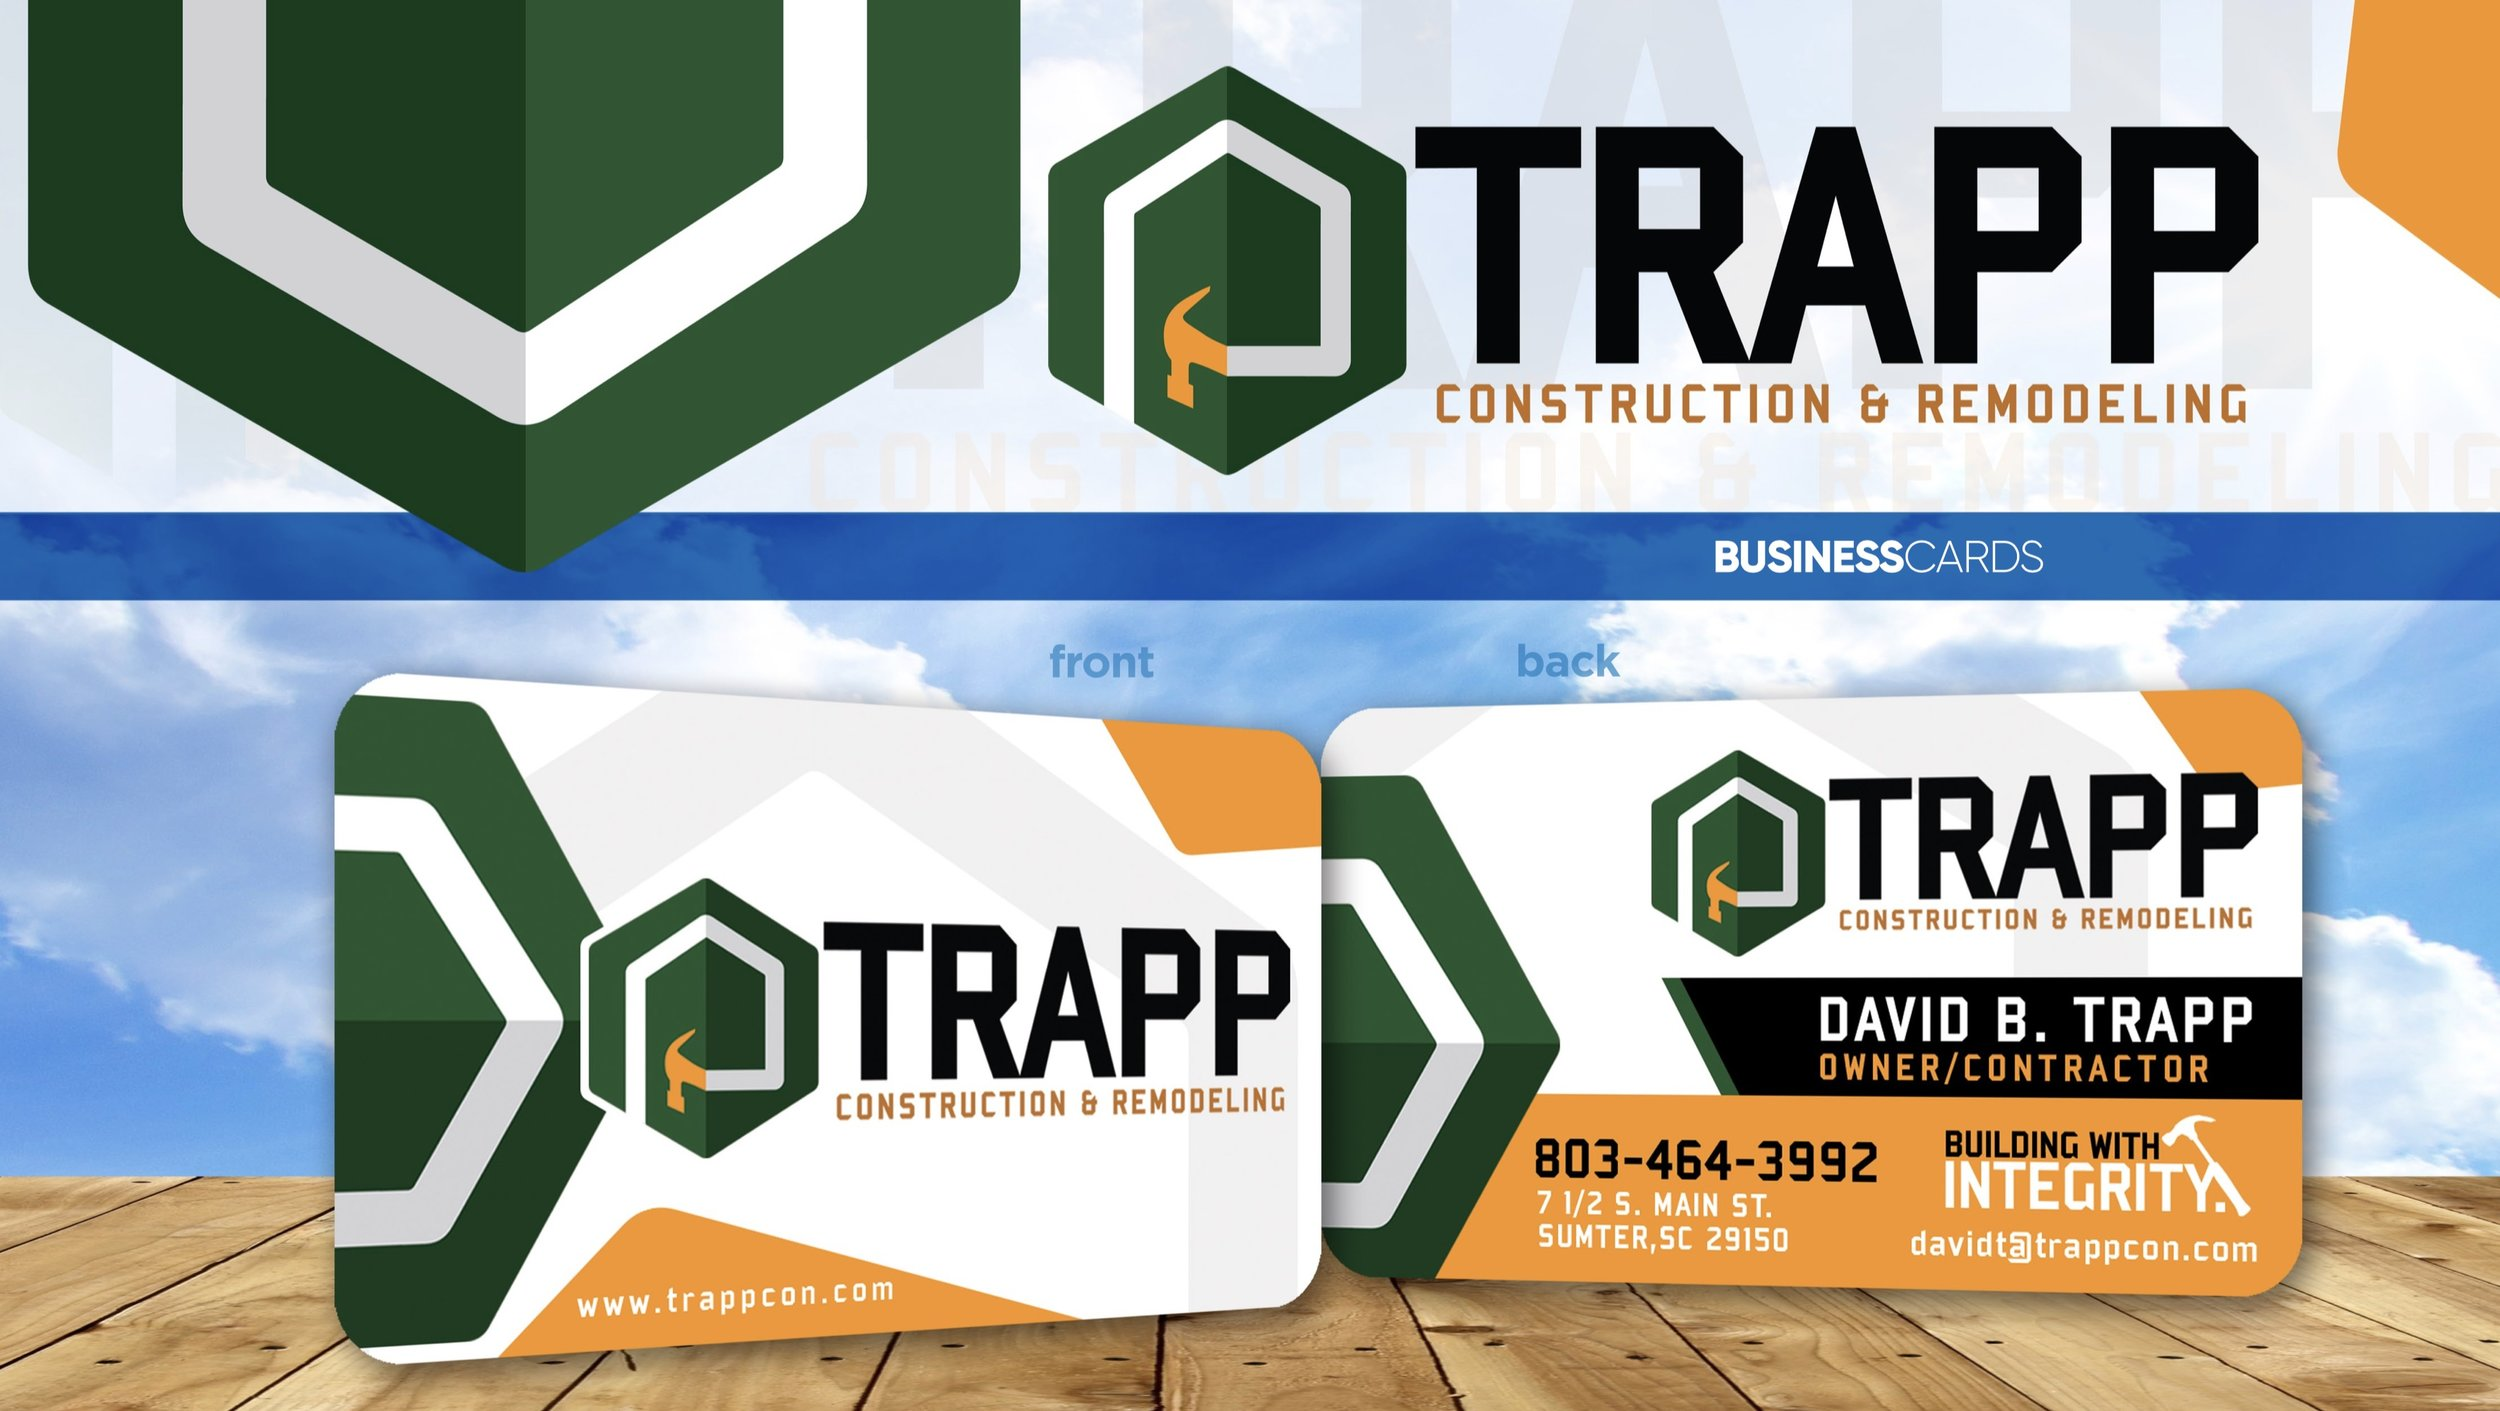 Business card design for Trapp Construction. We designed the logo for this as well and printed them on 16pt UV high gloss with rounded corners.